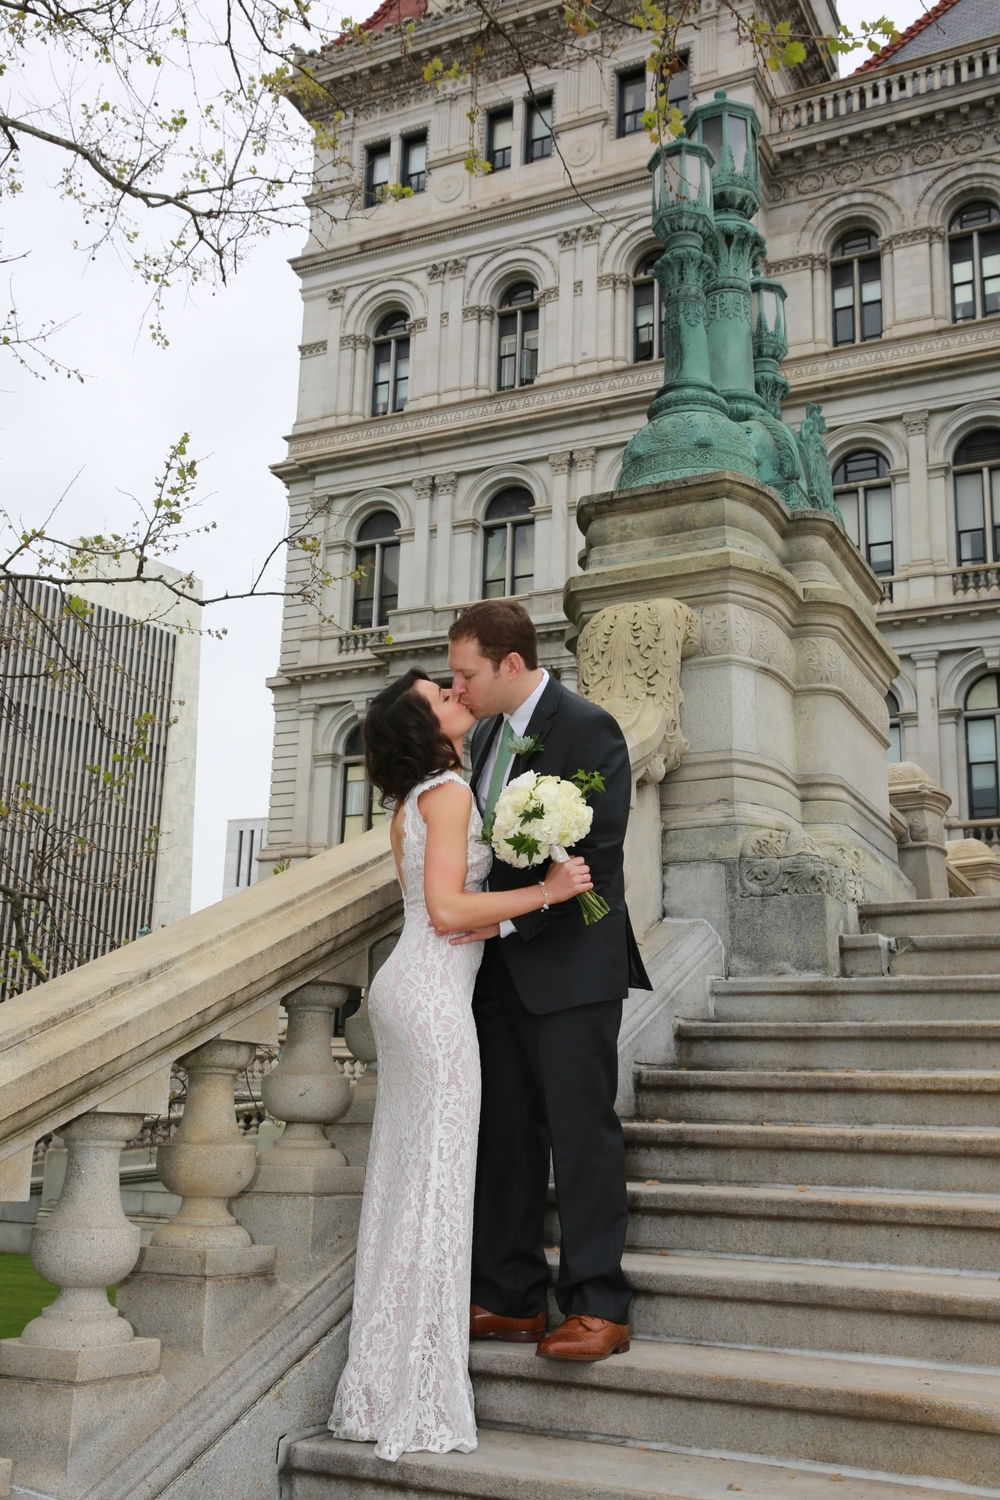 Albany wedding photo at the state house